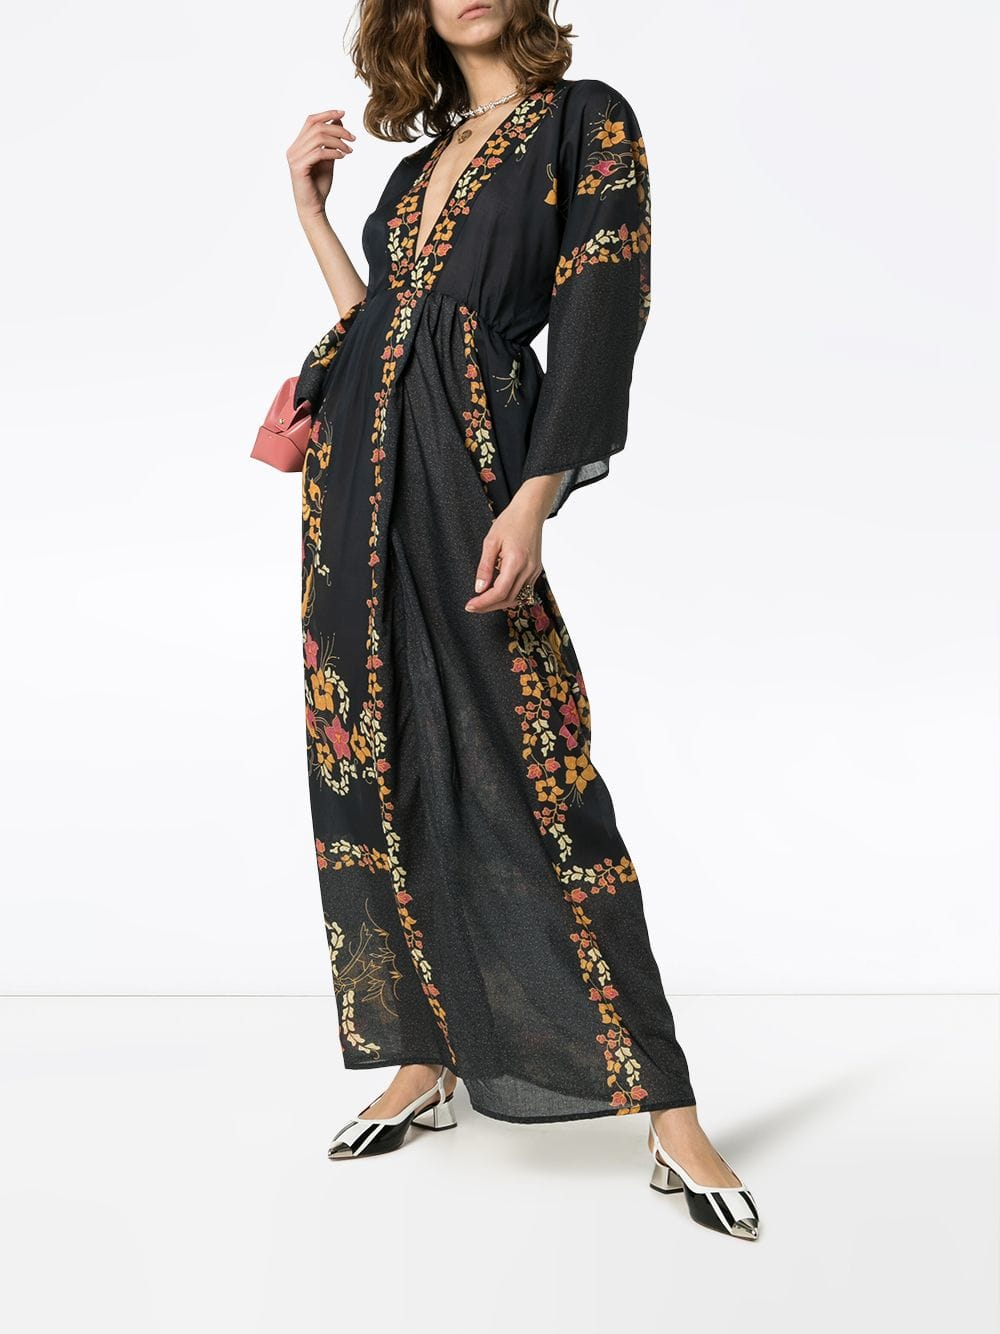 CELIA DRAGOUNI Kimono Sleeve Maxi Black / Floral Printed Dress